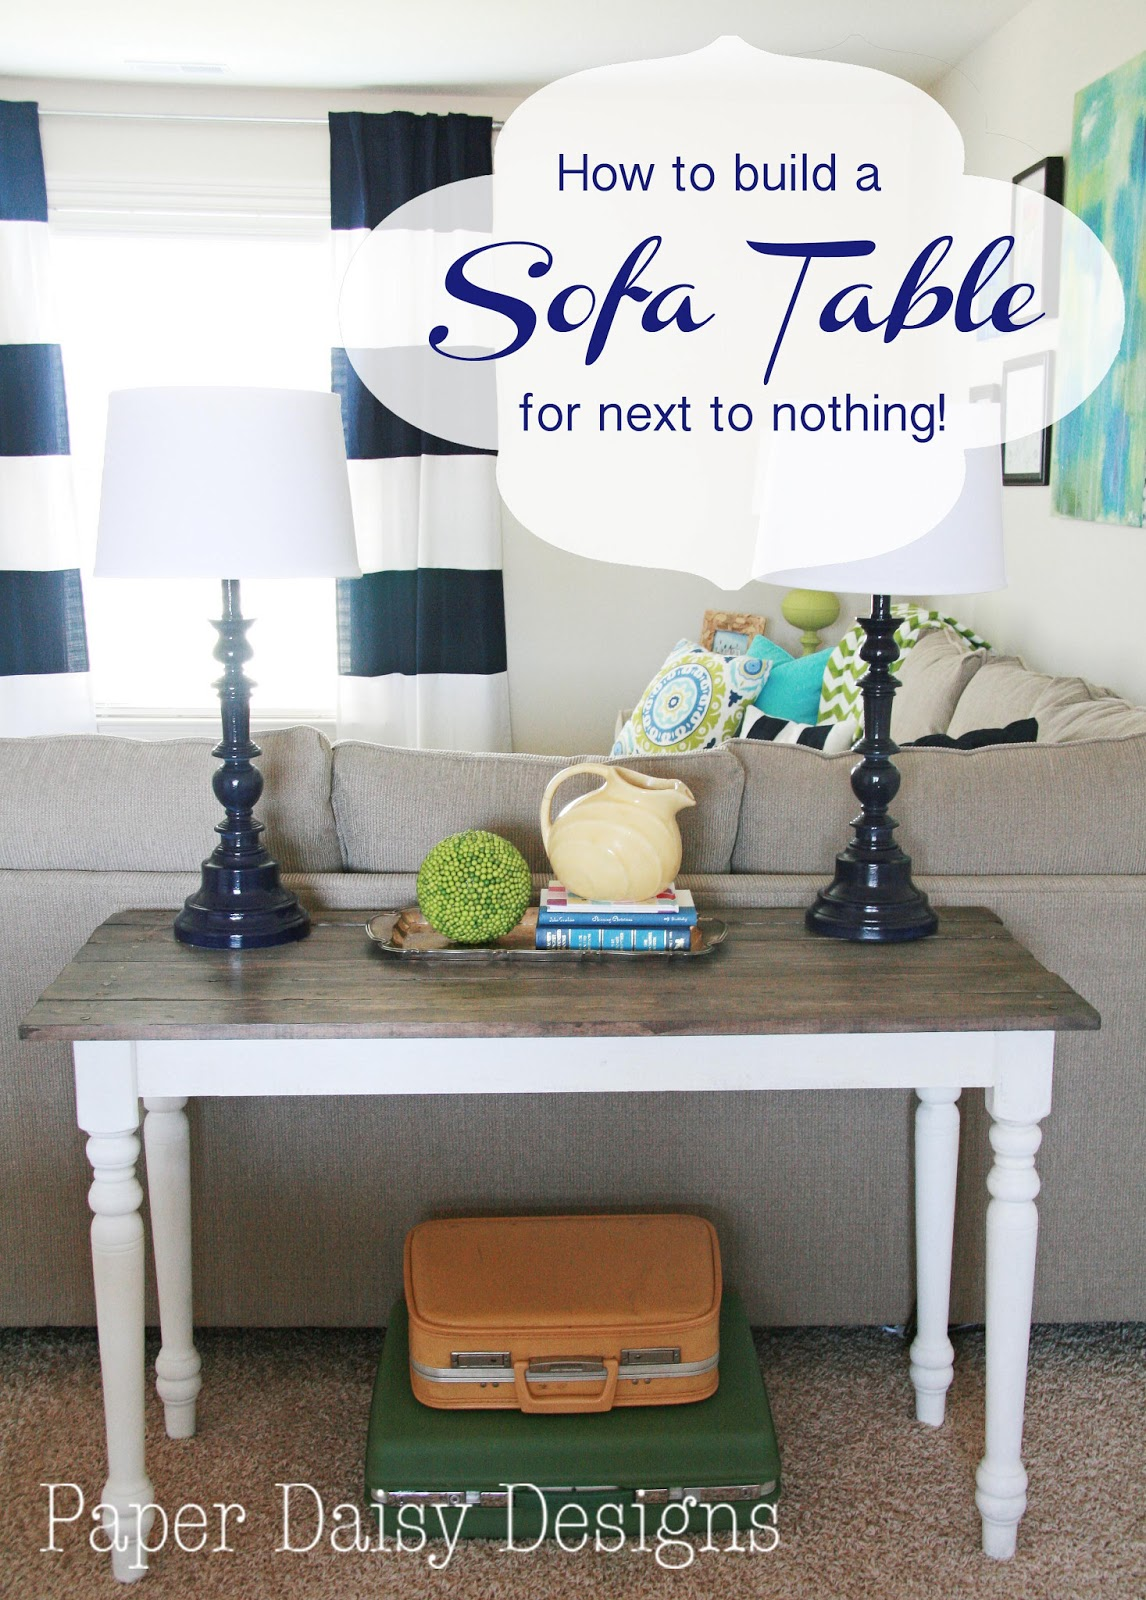 How to make a sofa table from 1 x 6 lumber - And How To Make New Wood Look Old